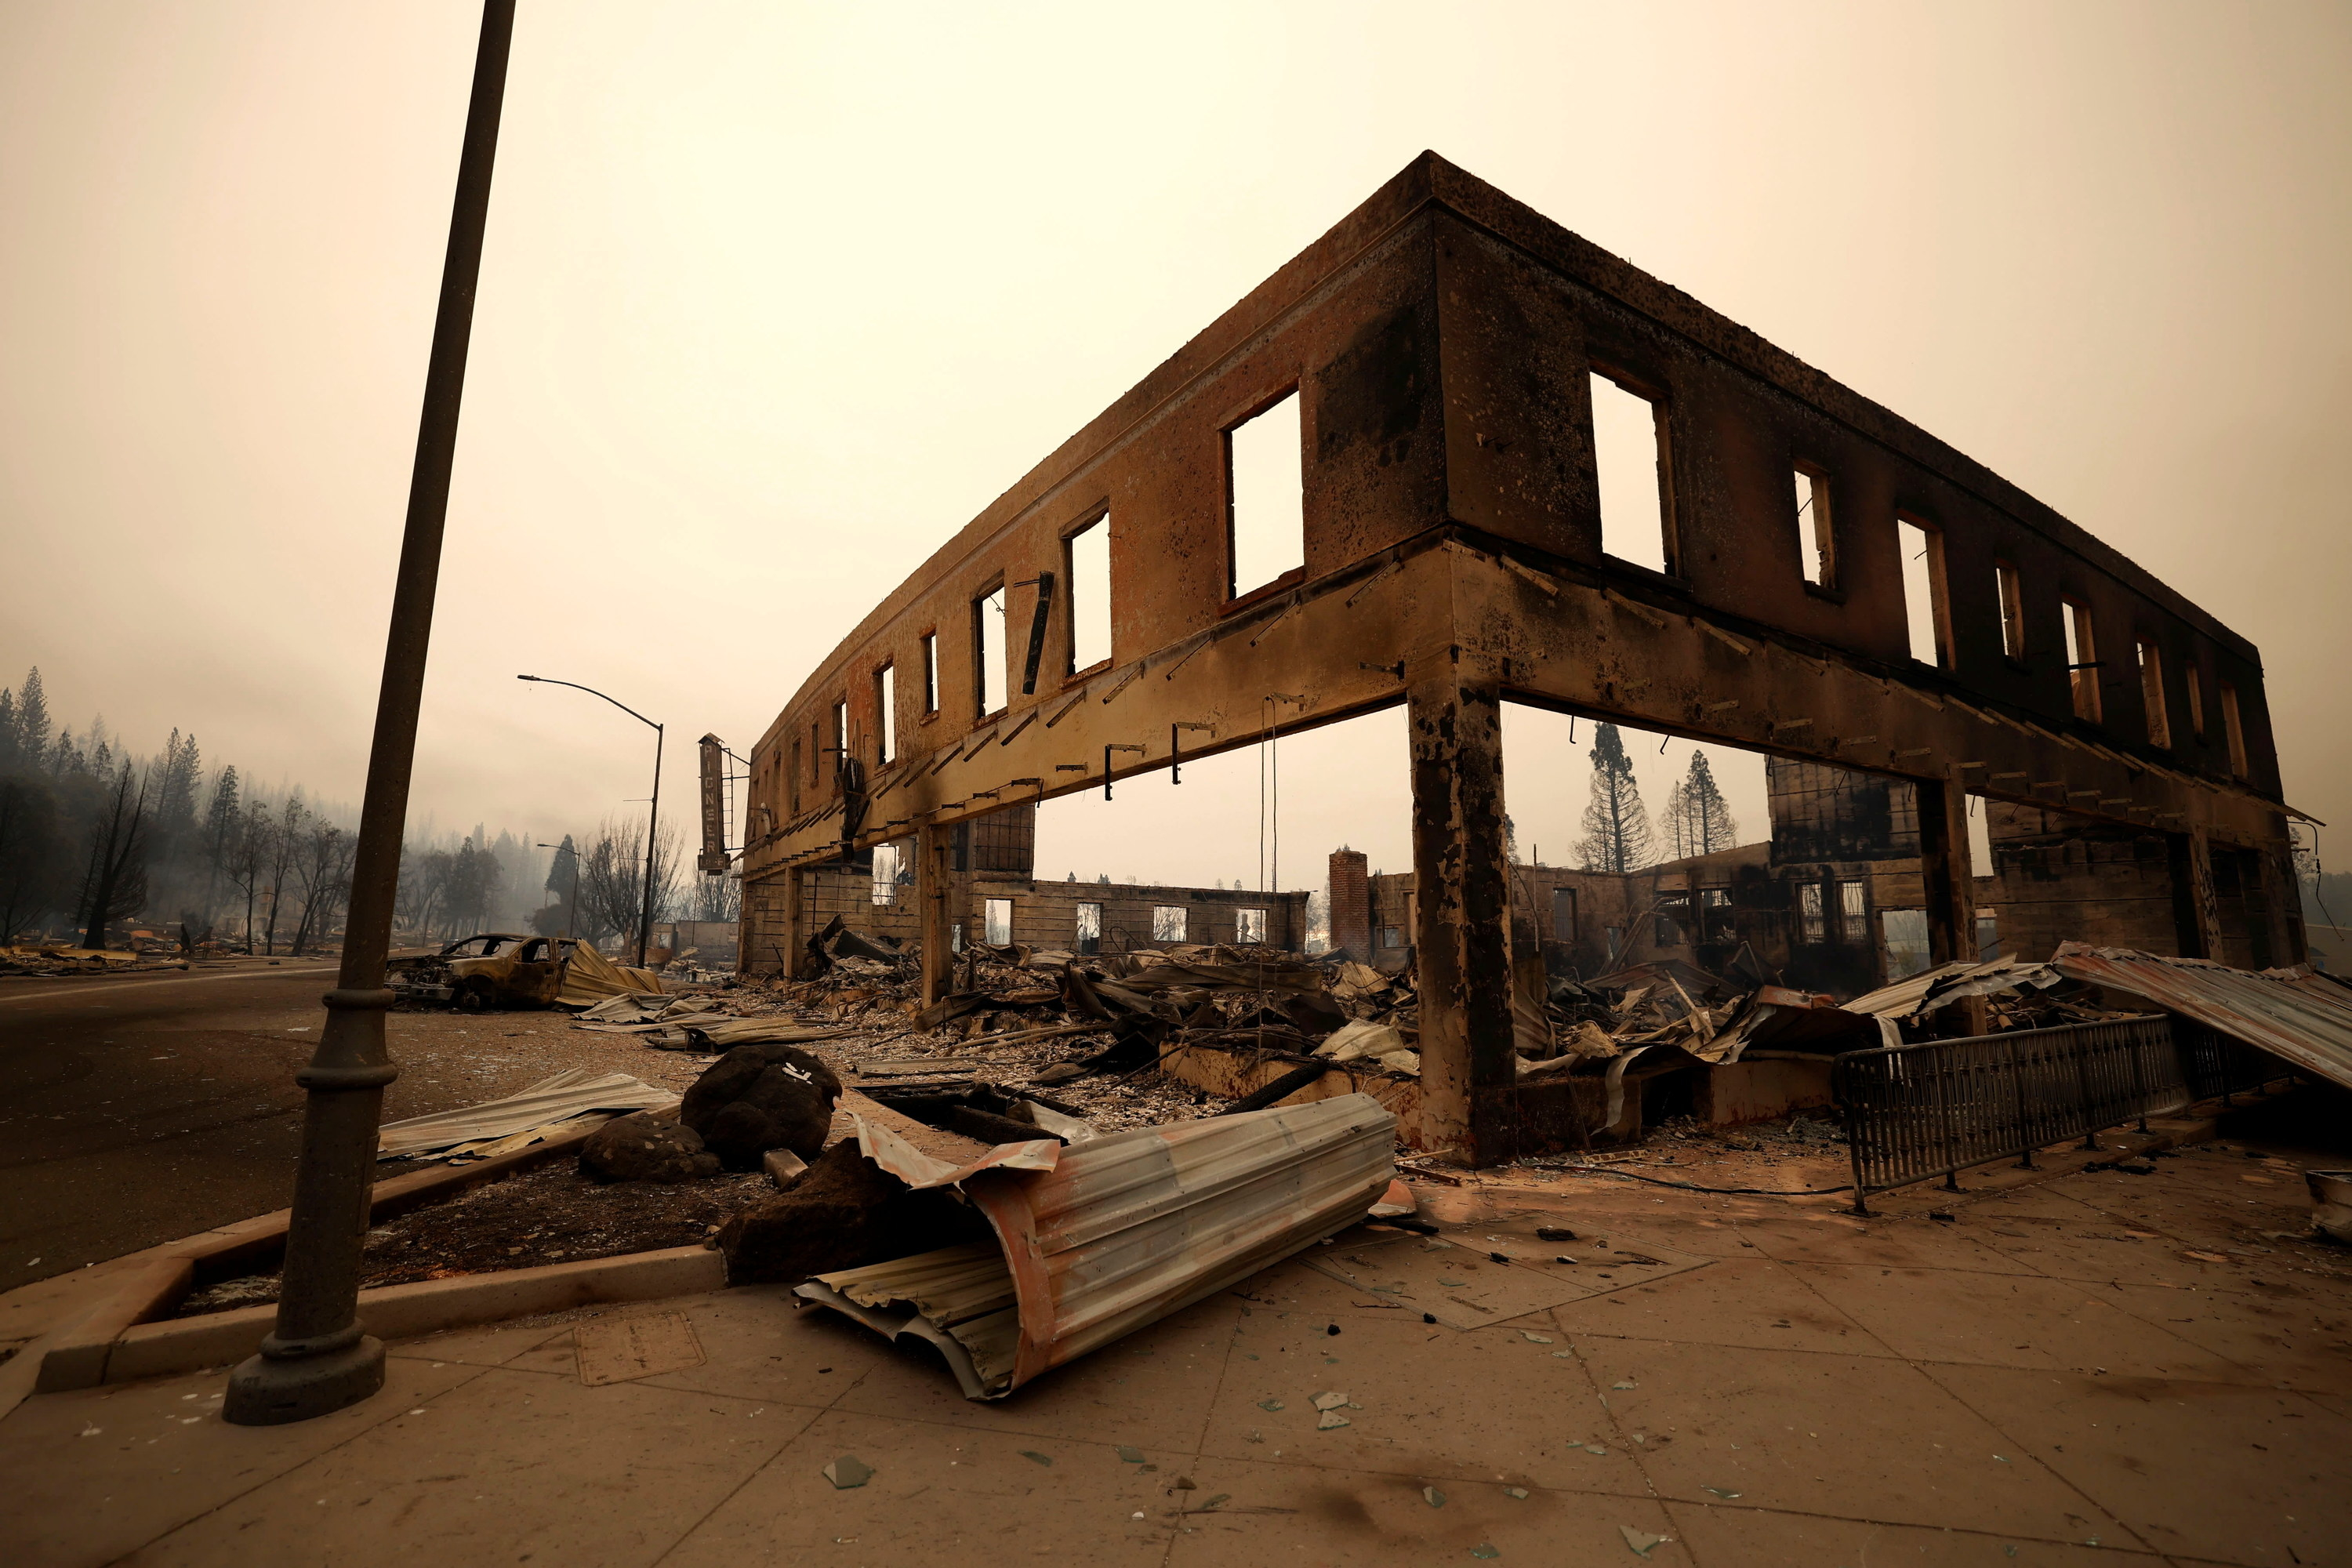 A building without windows or a roof is surrounded by debris under a smoky sky